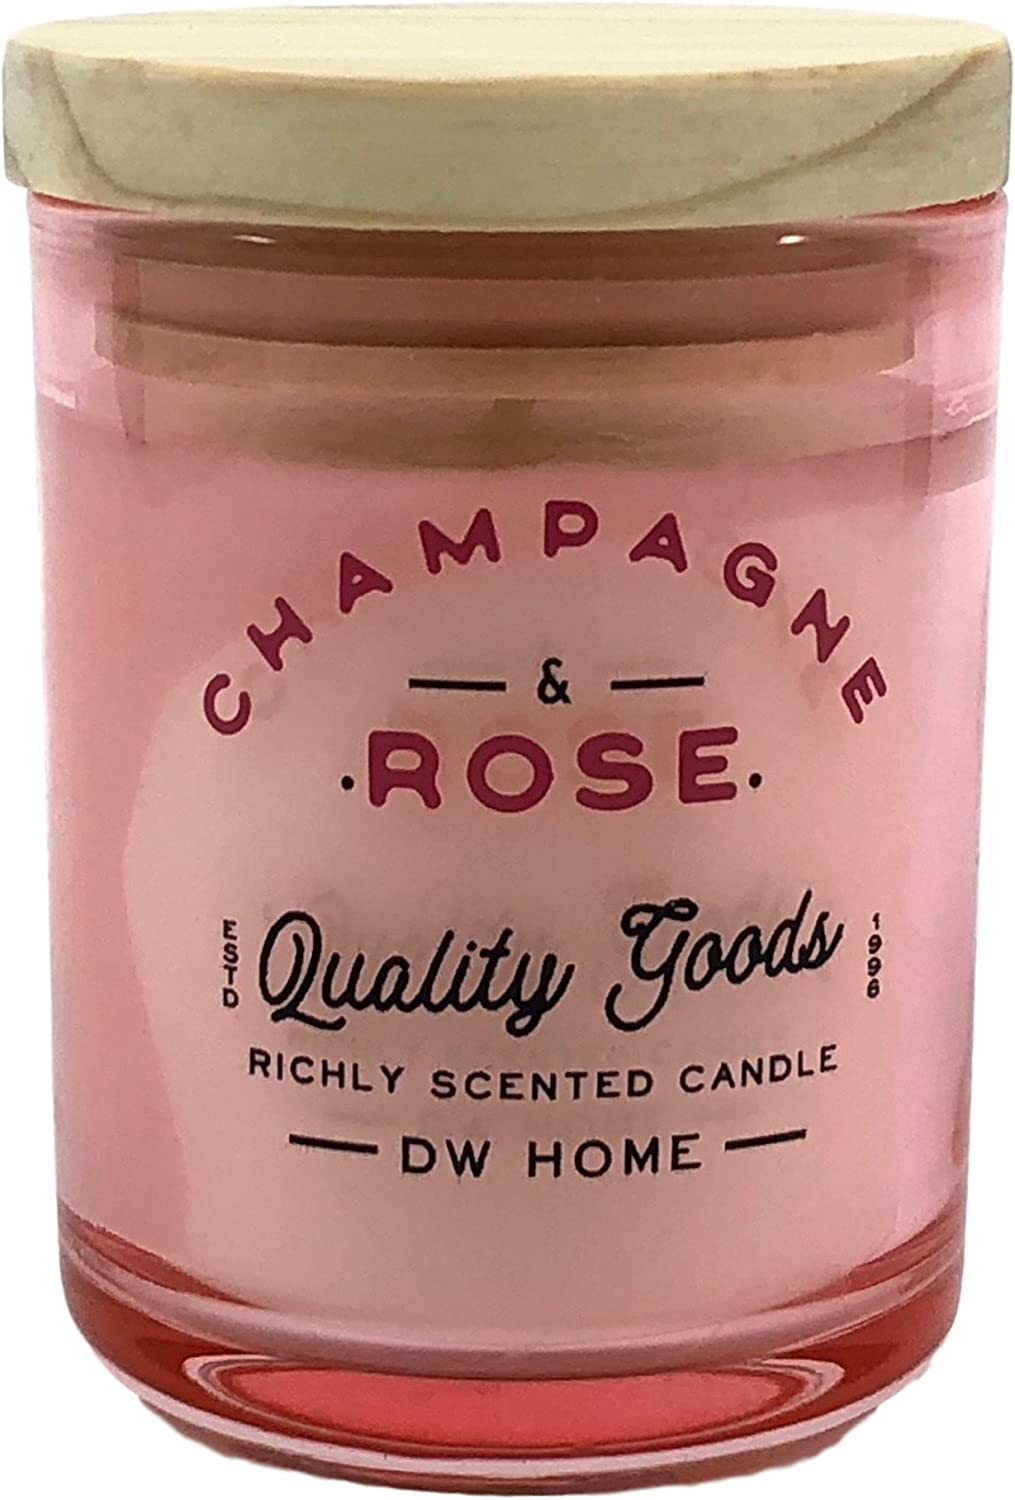 DW Home Small Champagne and Rose Scented Candle